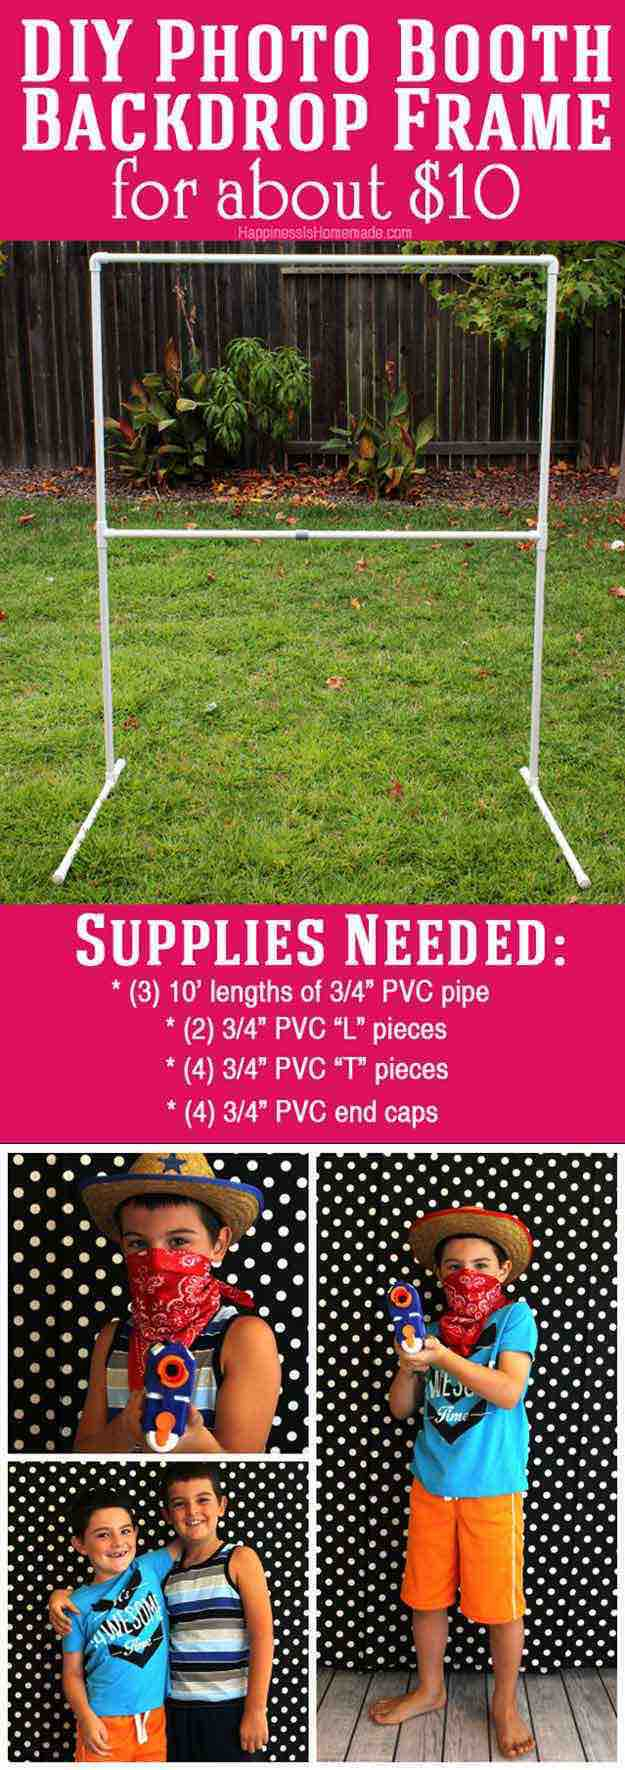 25 diy photo booth ideas for your next shindig diy projects 10 backdrop frame diy photo booth ideas for your next shindig solutioingenieria Choice Image